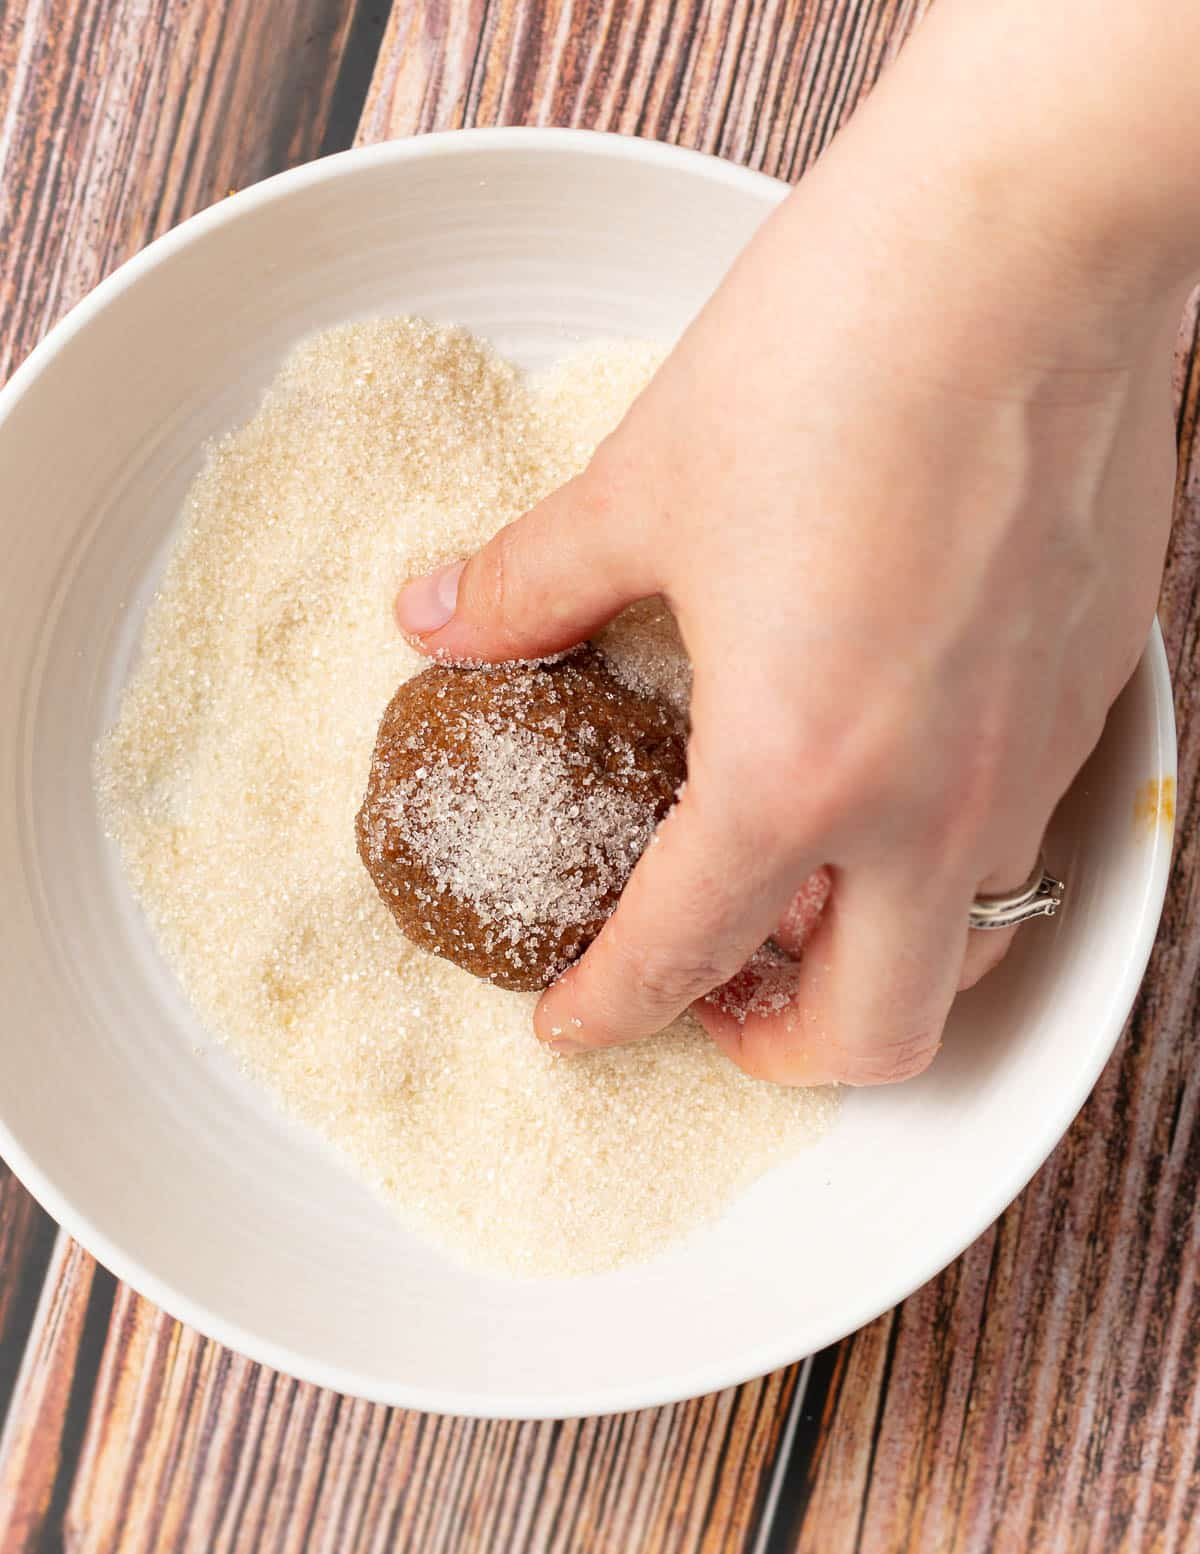 a cookie dough ball being rolled in sugar